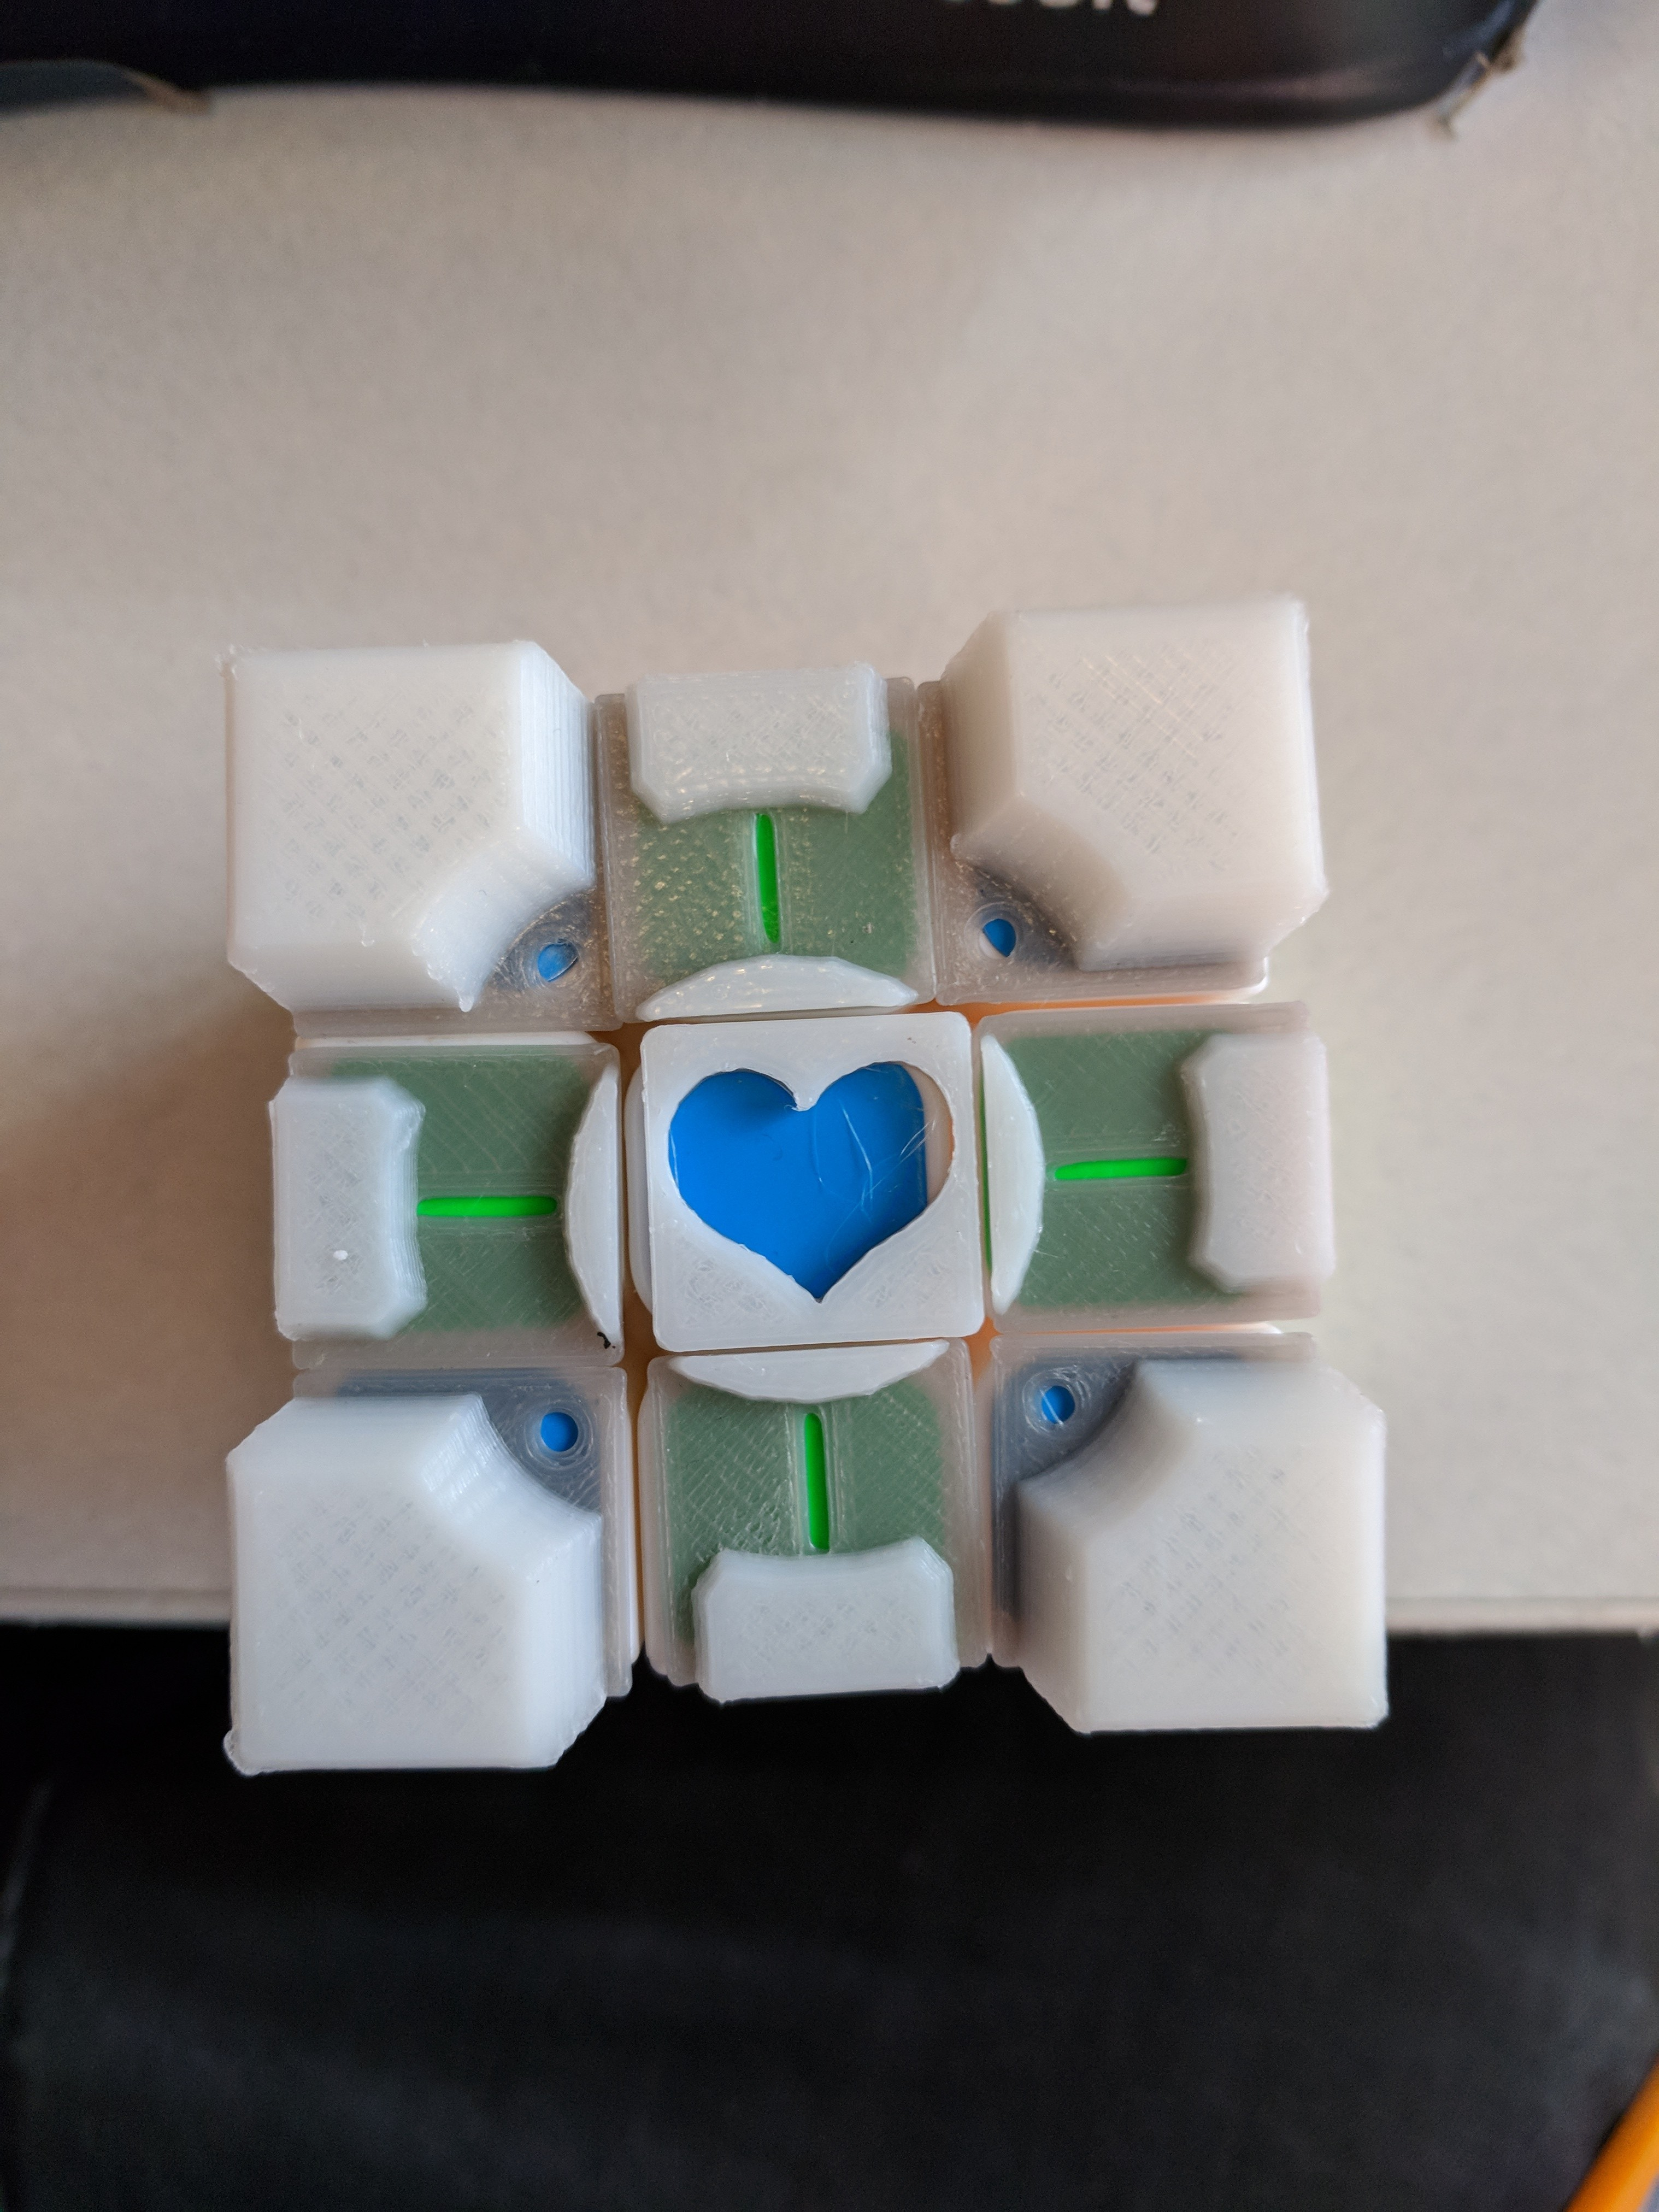 Companion Cube Papercraft Rubik S Panion Cube Stickers Improved by Perchik Thingiverse